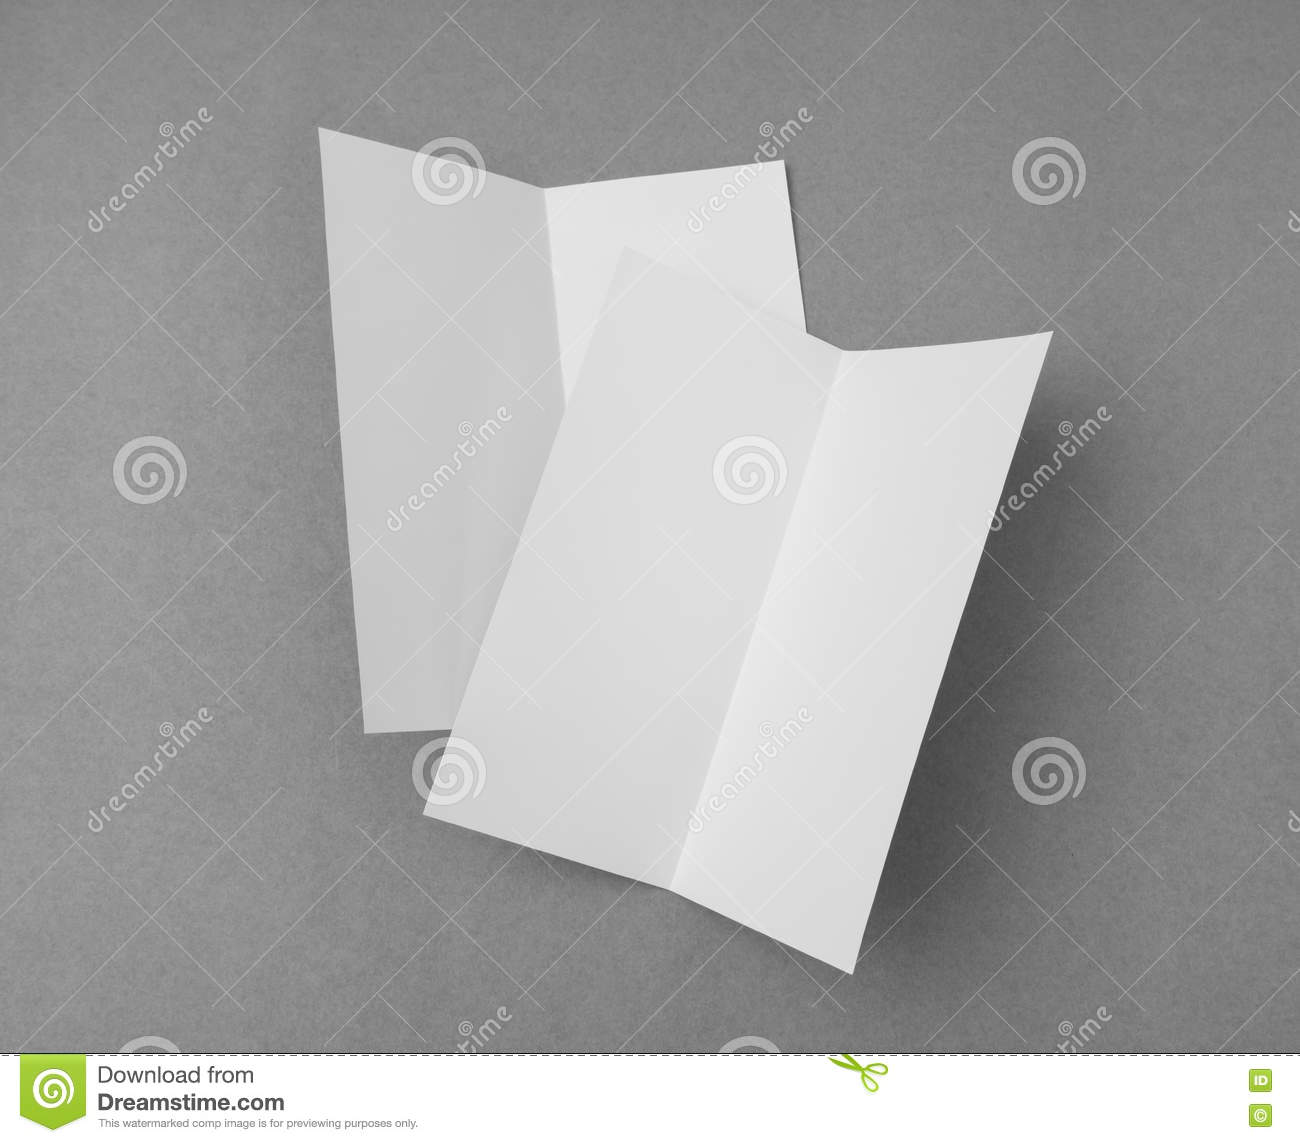 bifold white template paper on gray background stock image image